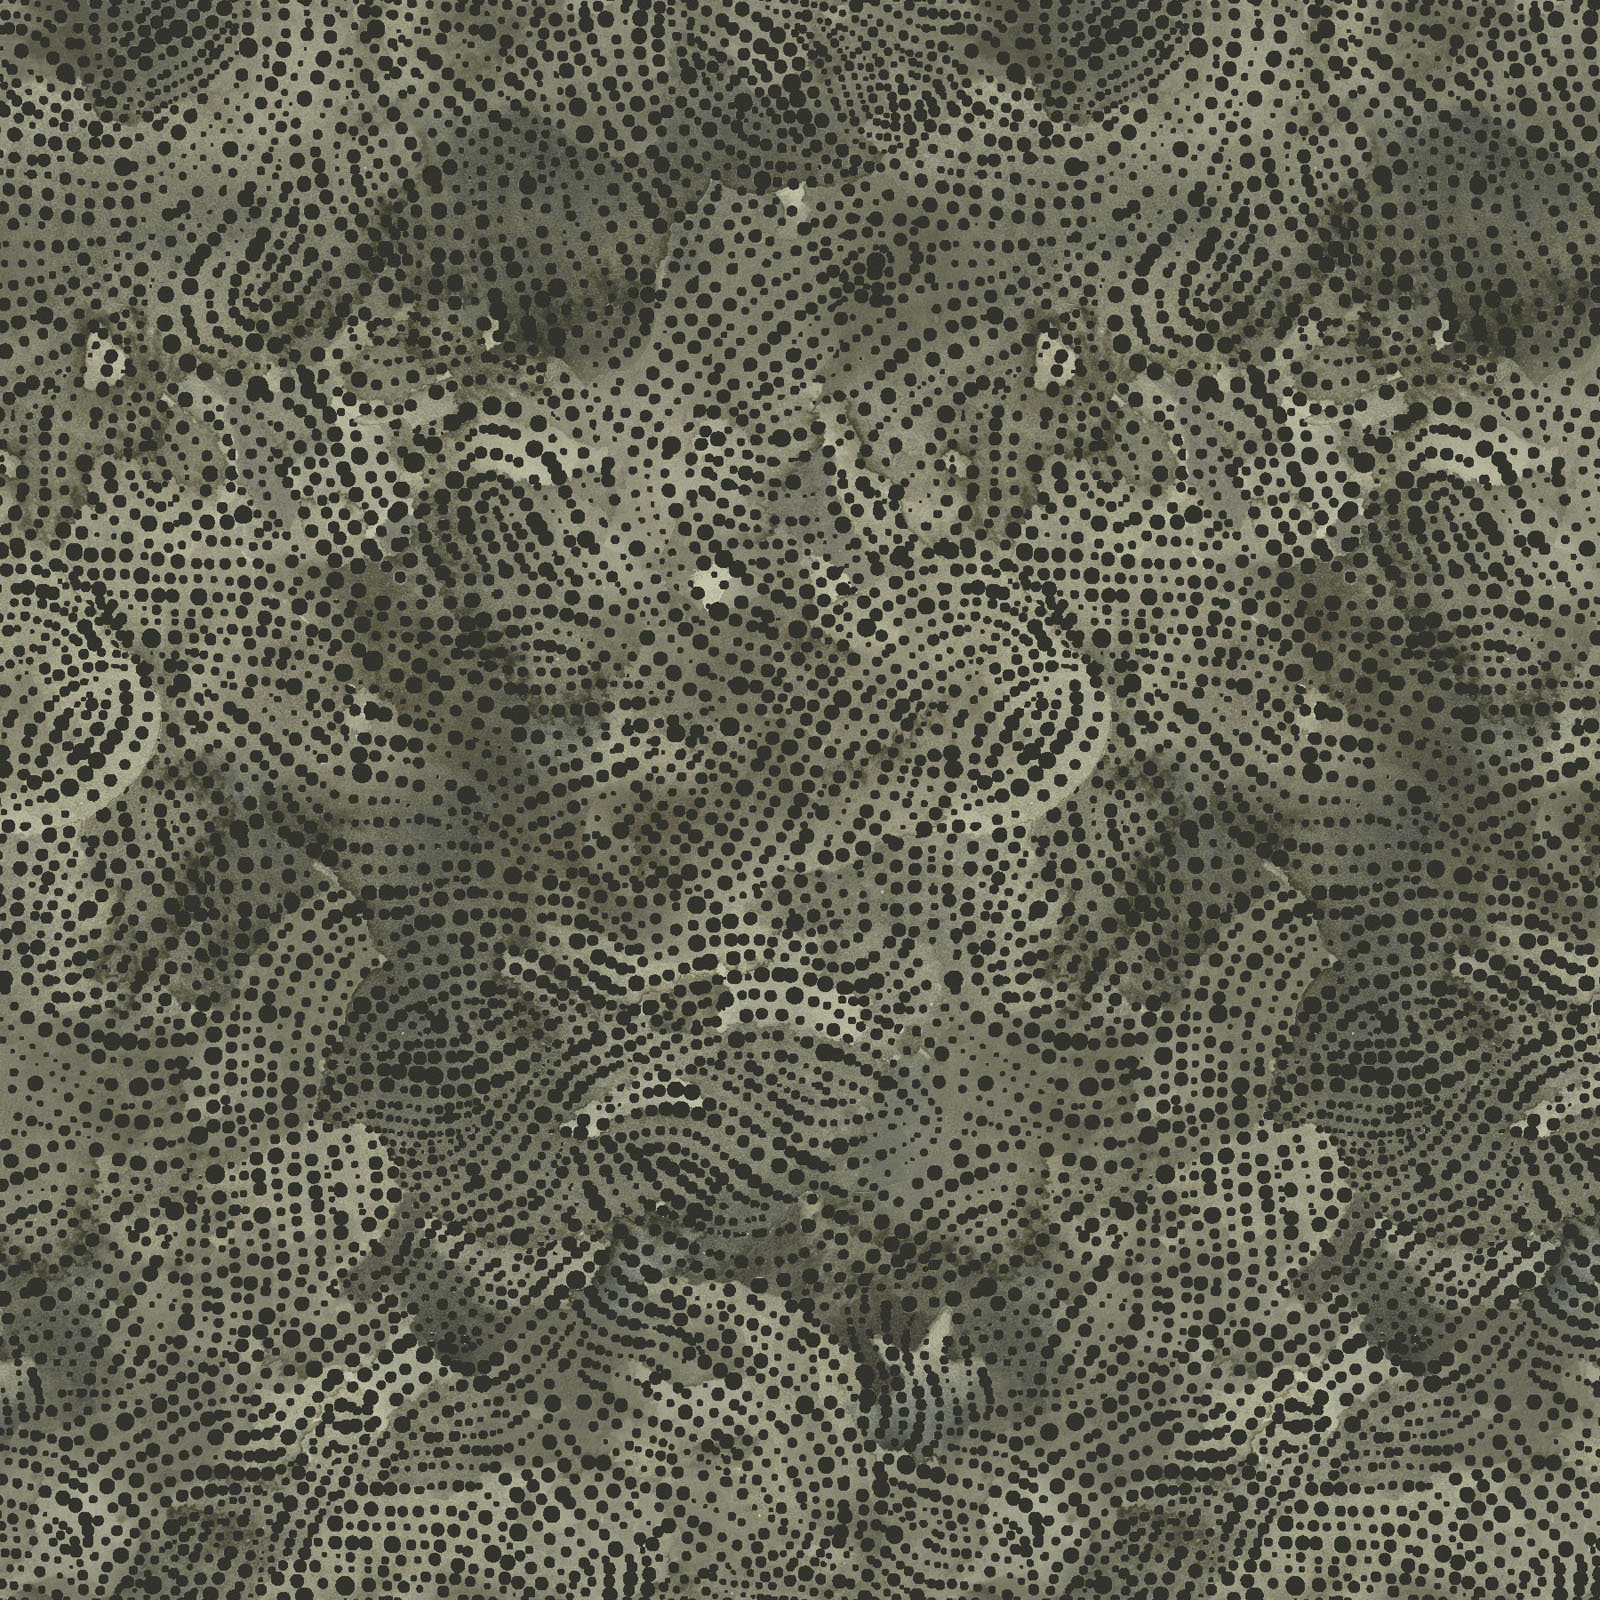 FRET-4339 GG - FOREST RETREAT BY JETTY HOME DOTS DARK GREEN